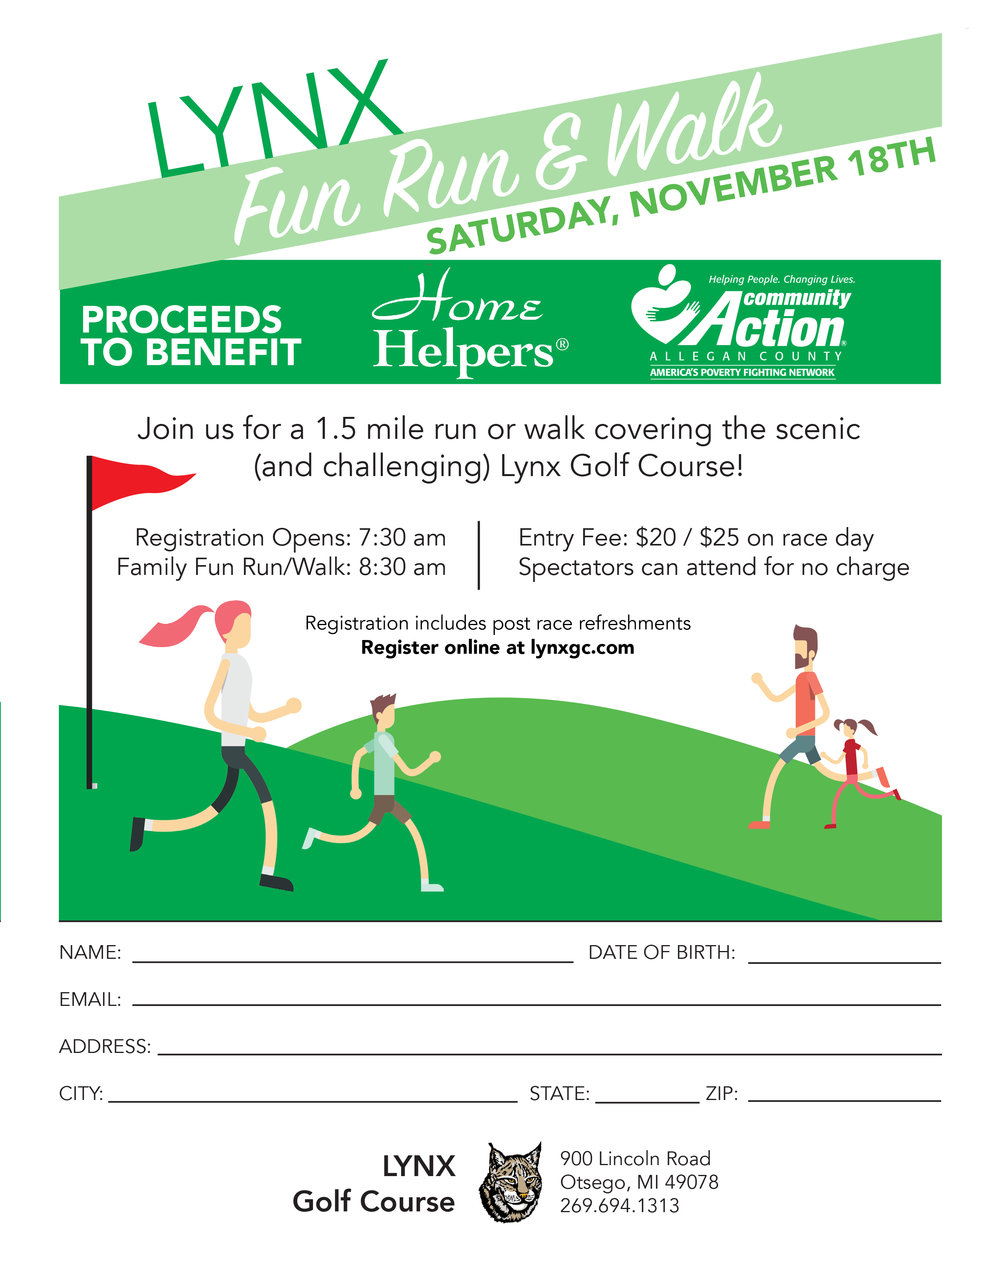 Lynx Fun Run Flyer.jpg